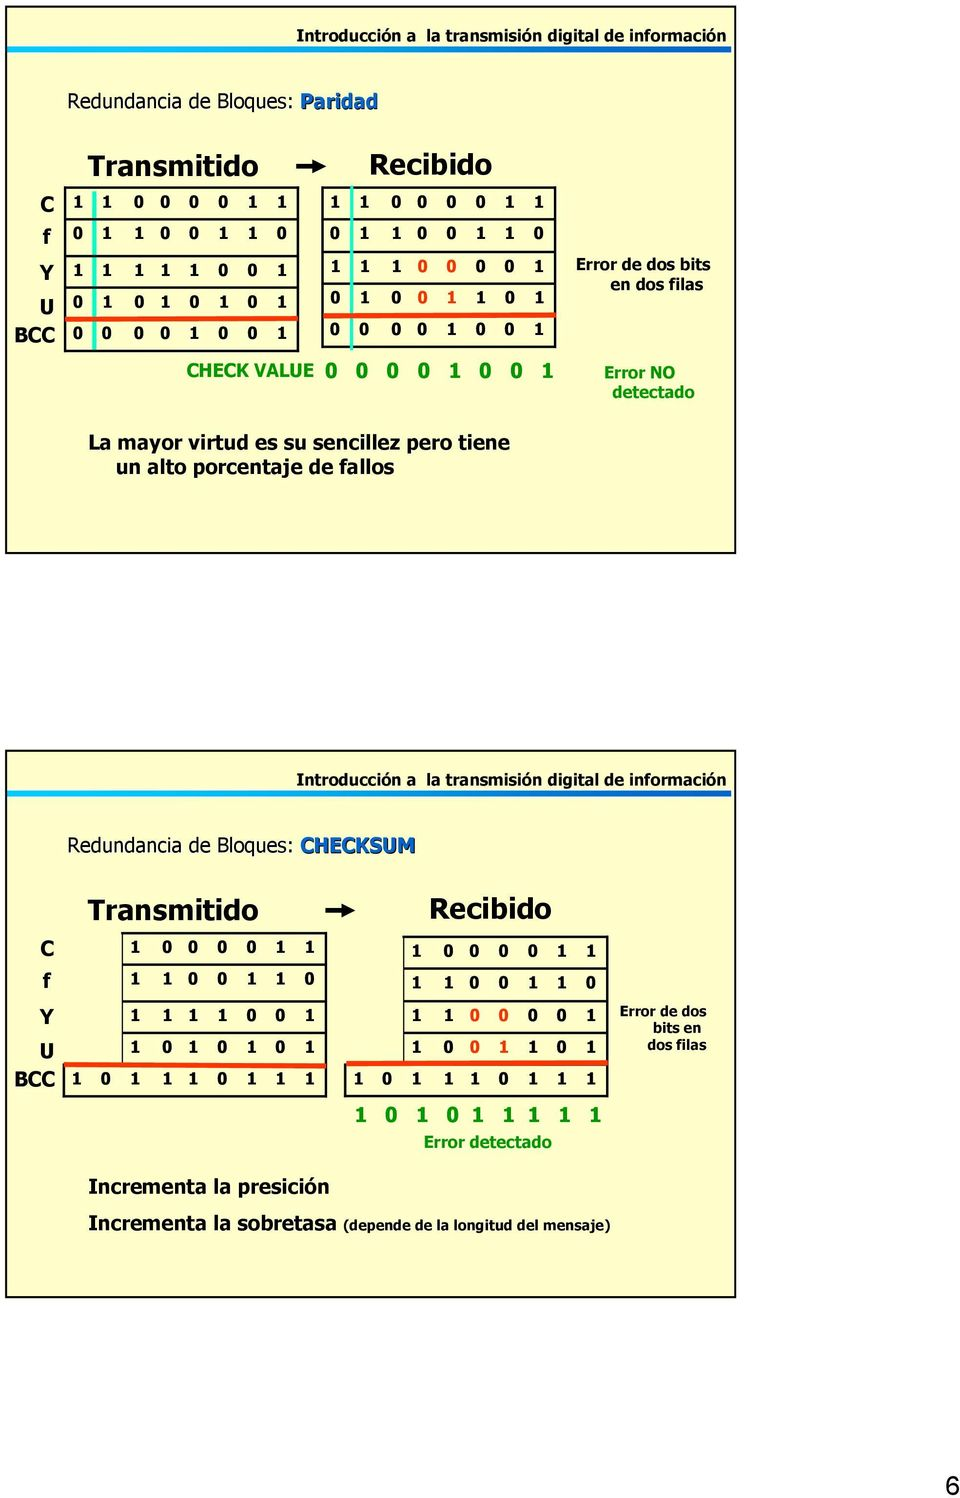 CHECK VALUE Redundancia de Bloques: Redundancia de Bloques: CHECKSUM CHECKSUM Transmitido Recibido Incrementa la